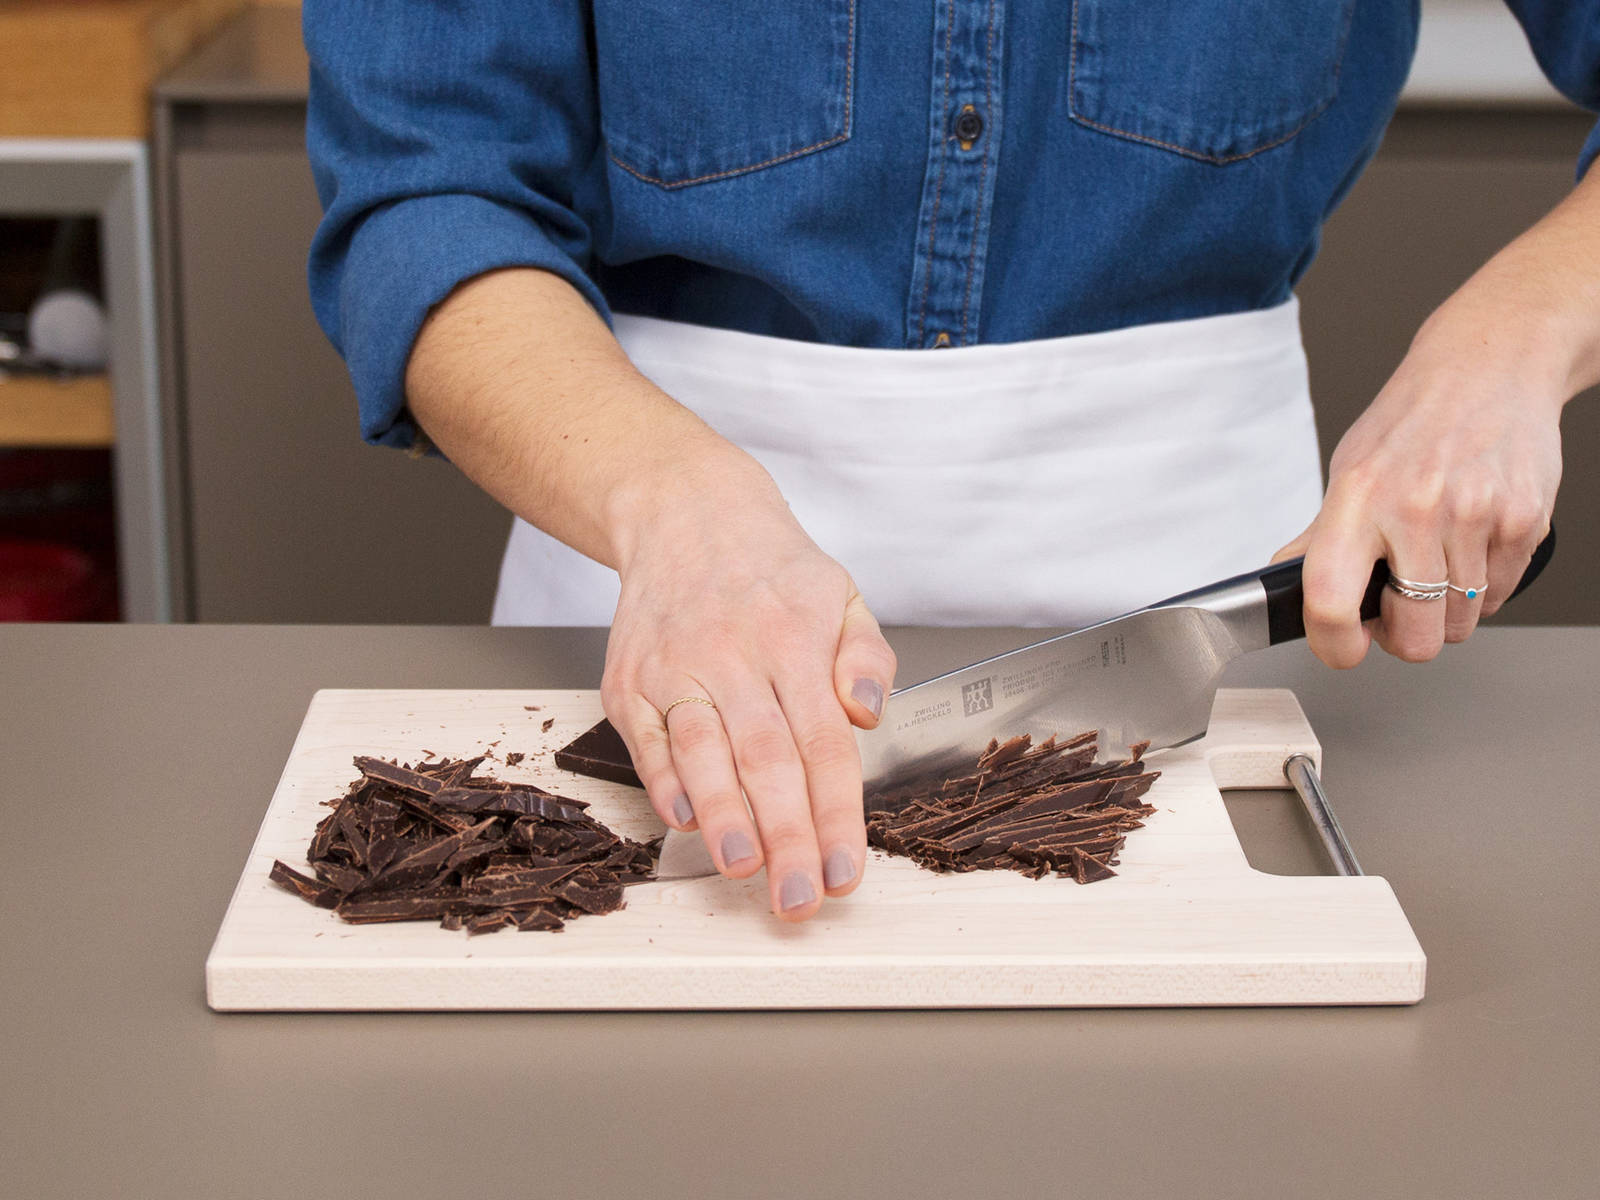 Set a heatproof bowl over a pot of simmering water. Chop the chocolate and add to the bowl. Once mostly melted, whisk in heavy cream and honey. Whisk until completely melted, remove from heat, and cover to keep warm.